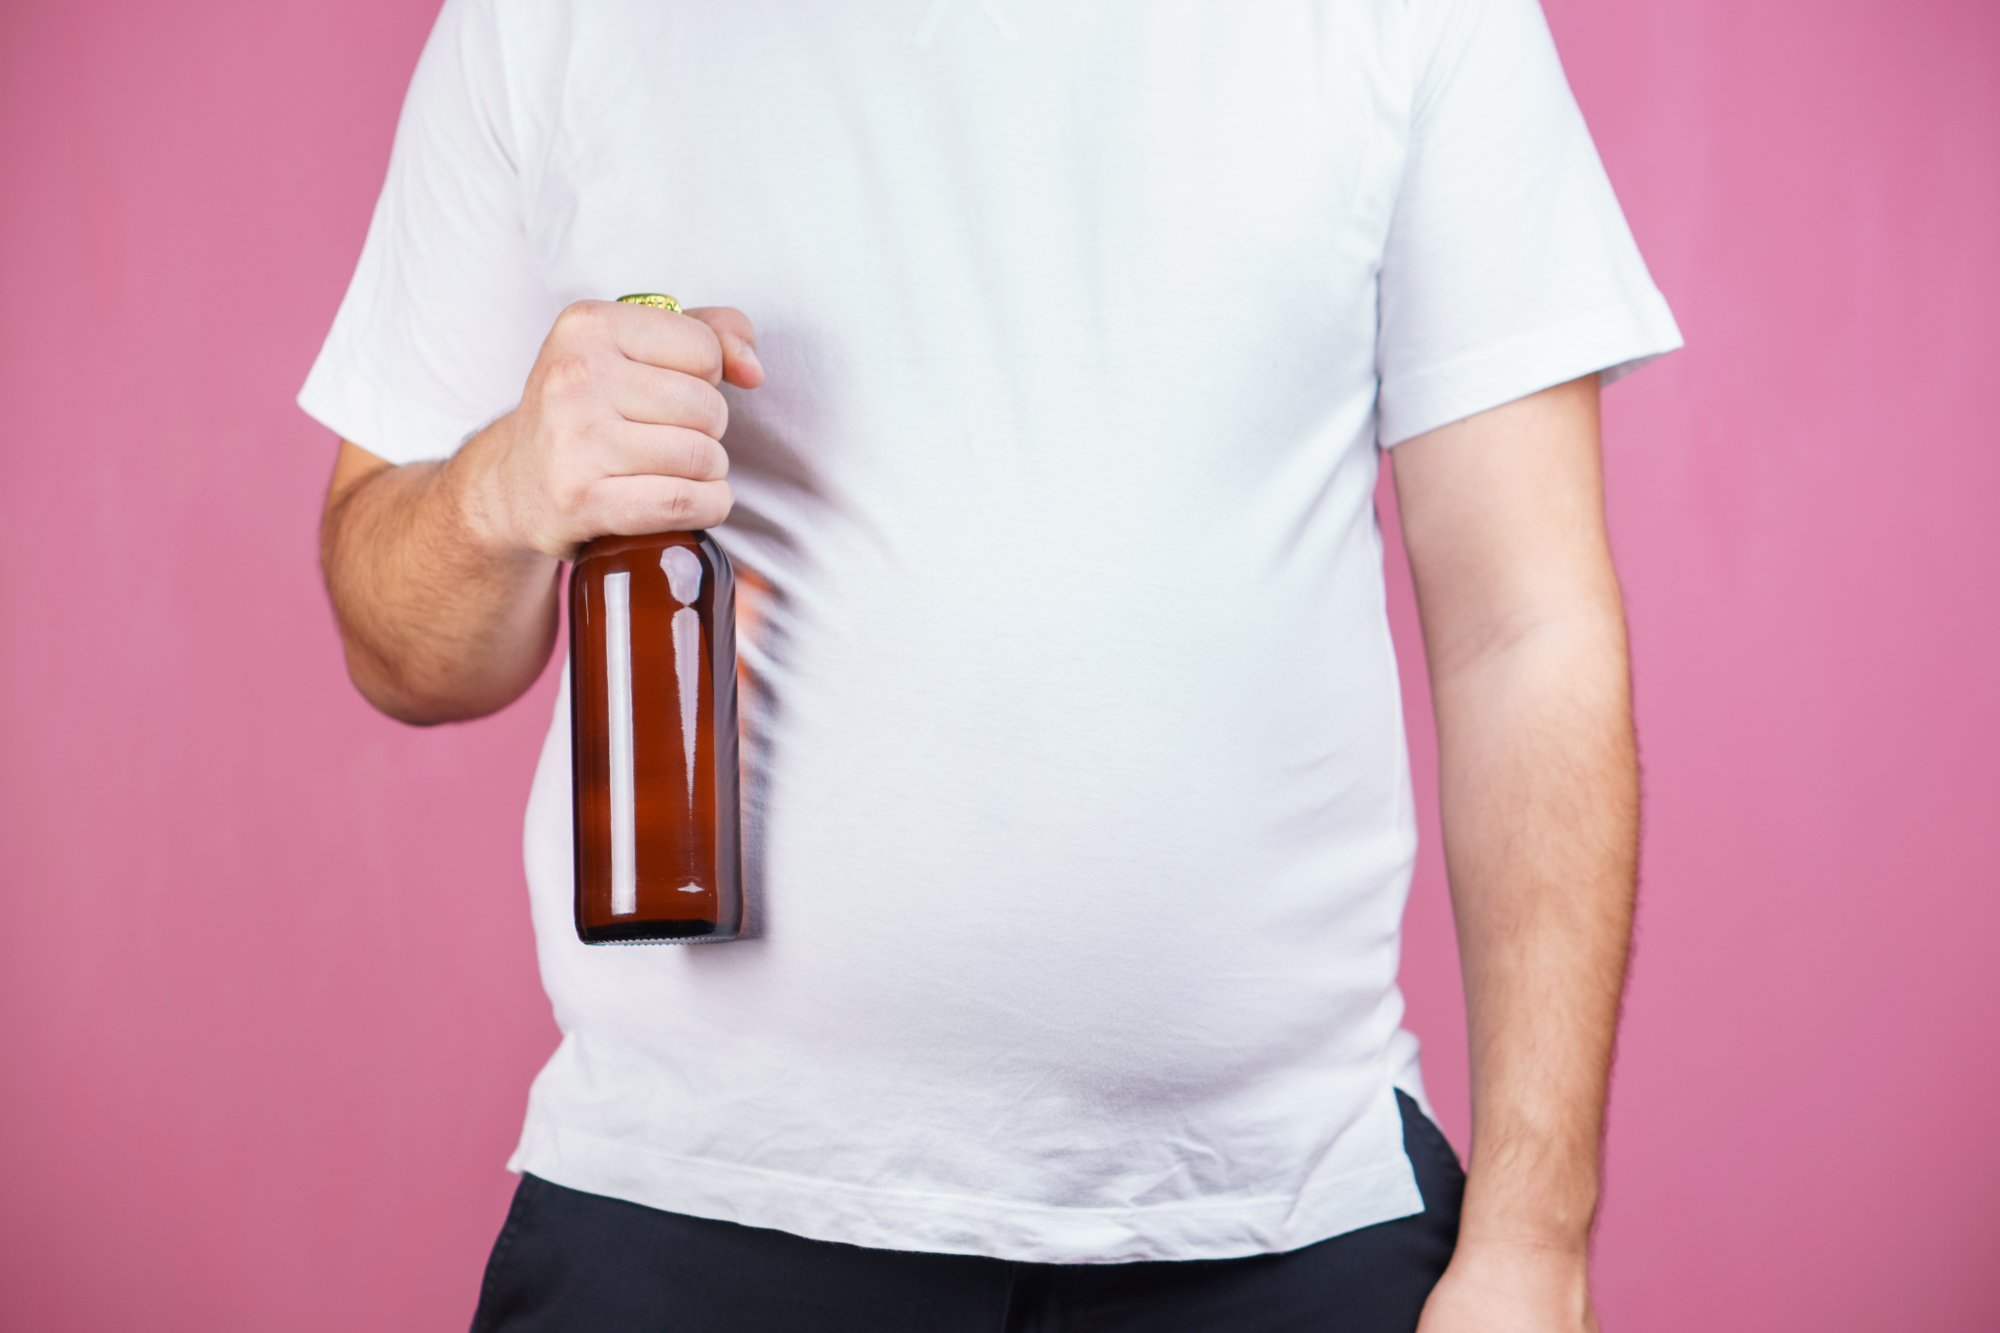 Is the beer belly really a result of drinking beer?